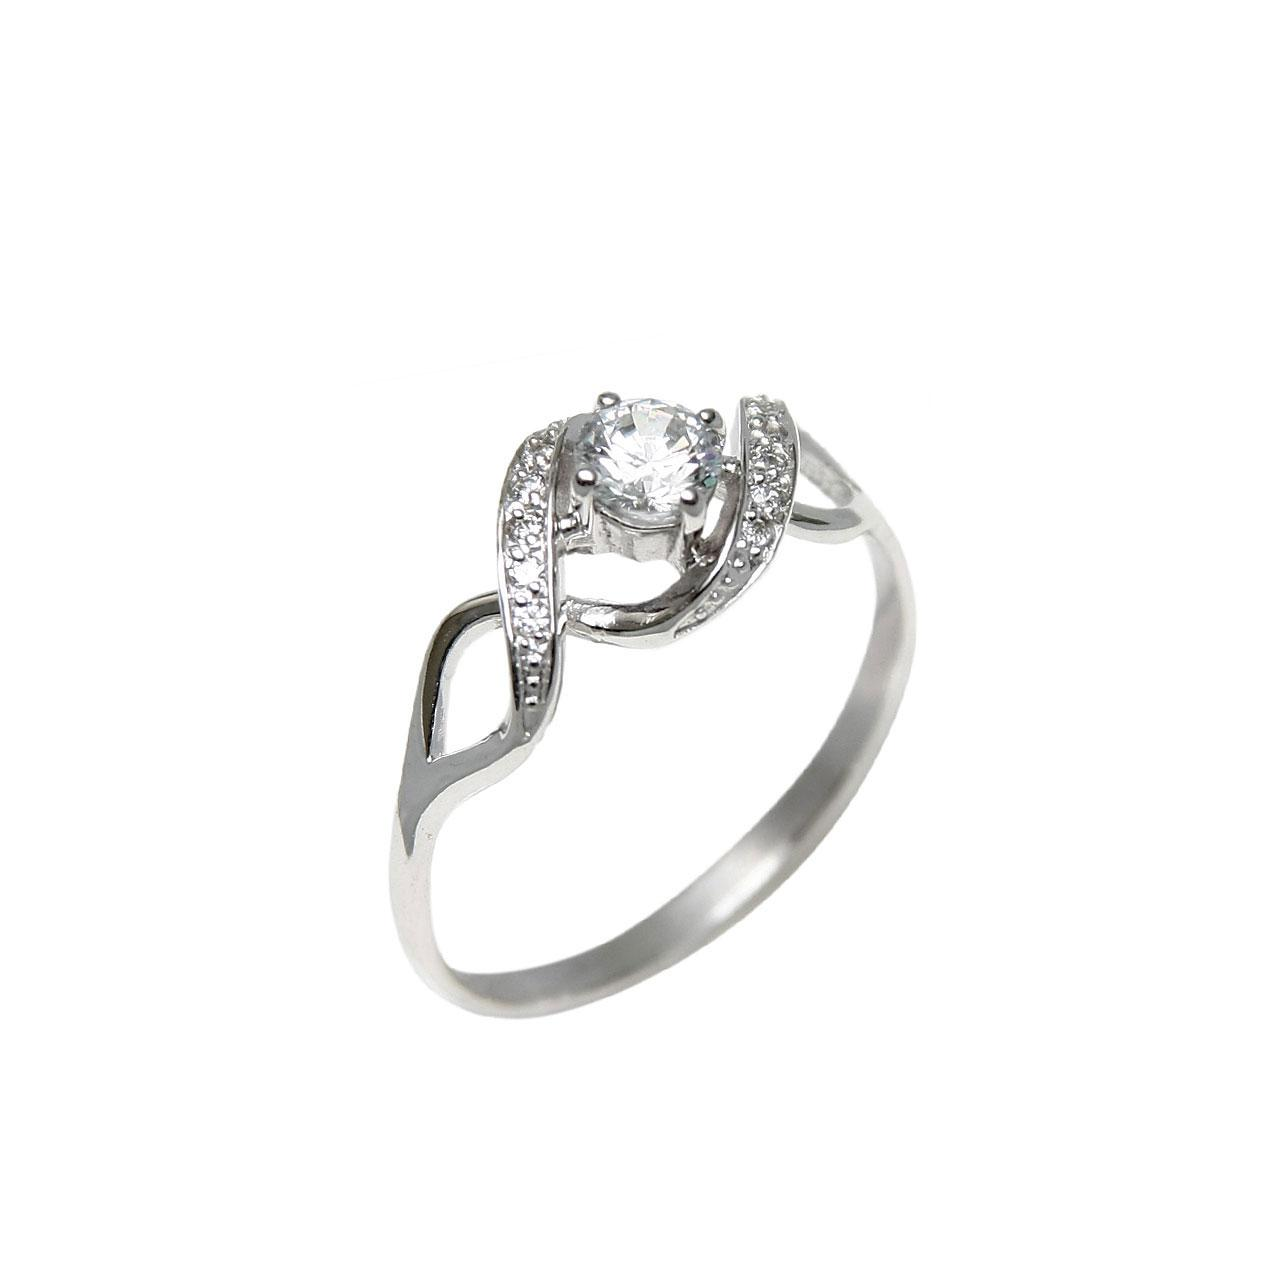 White gold CZ engagement ring 1